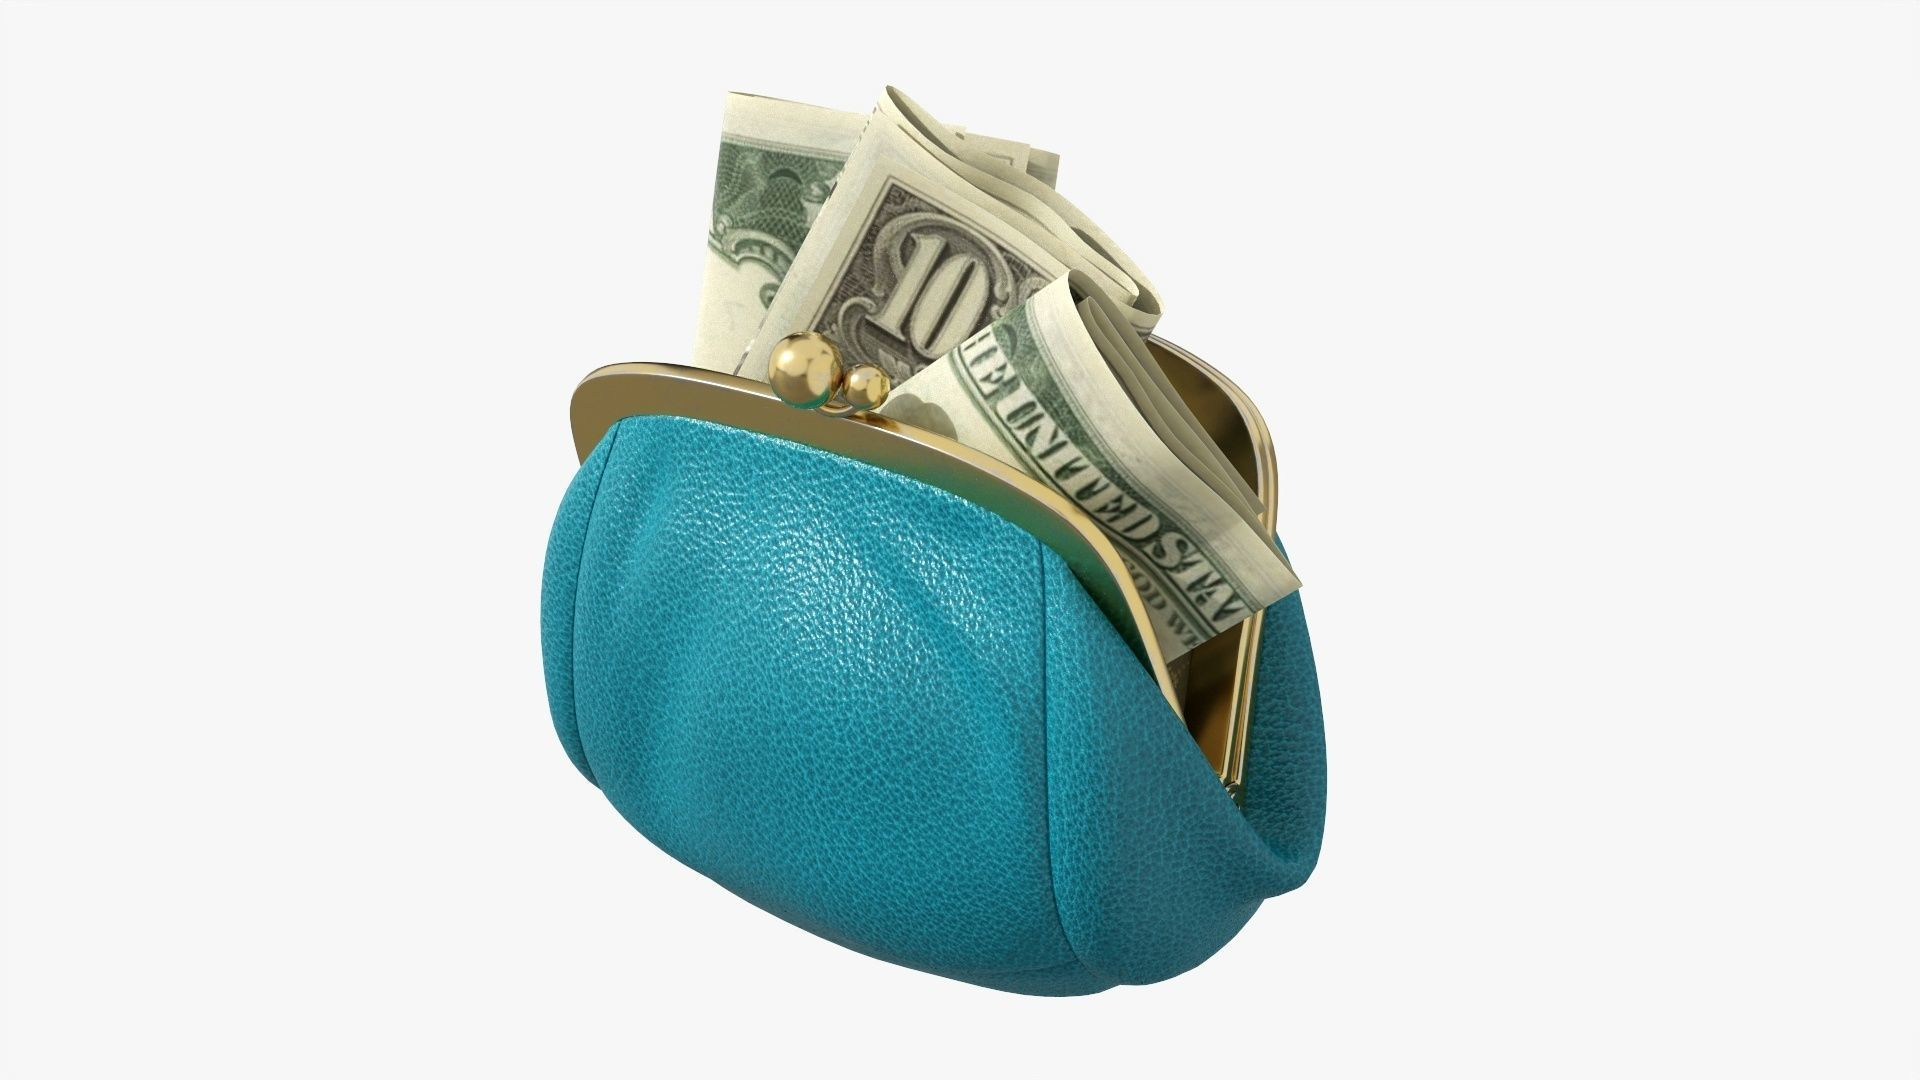 Female purse with banknotes